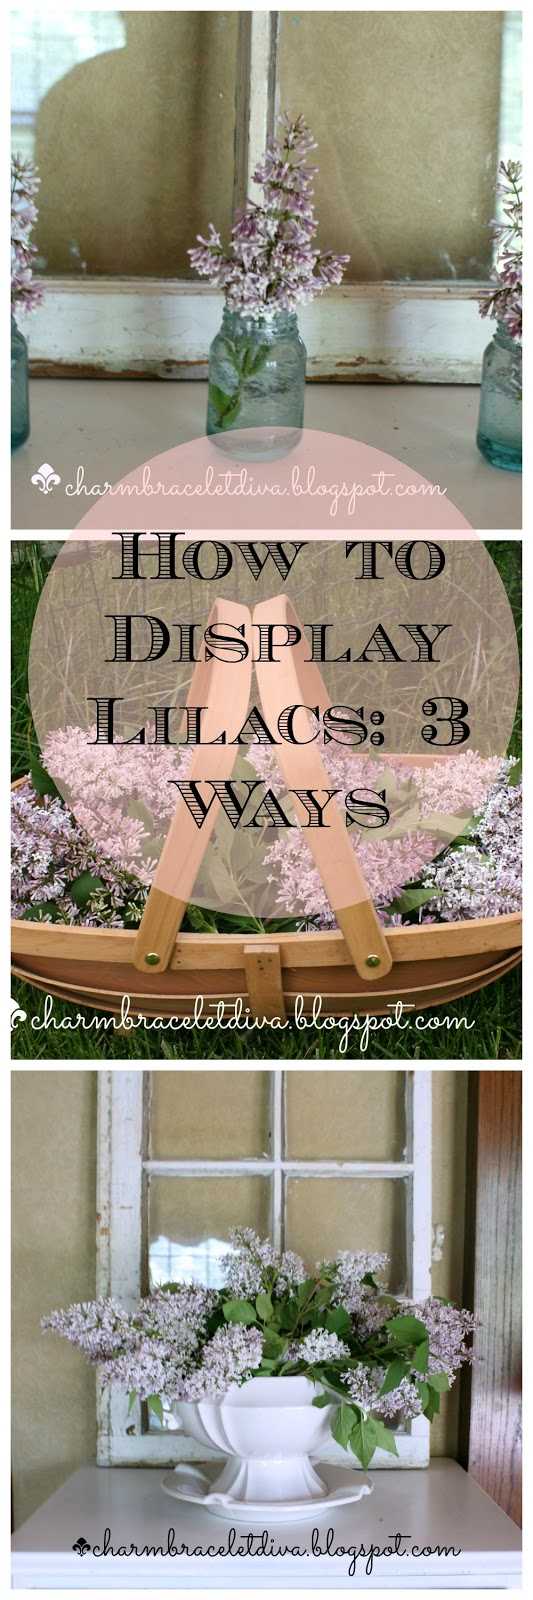 lilac display ideas collage